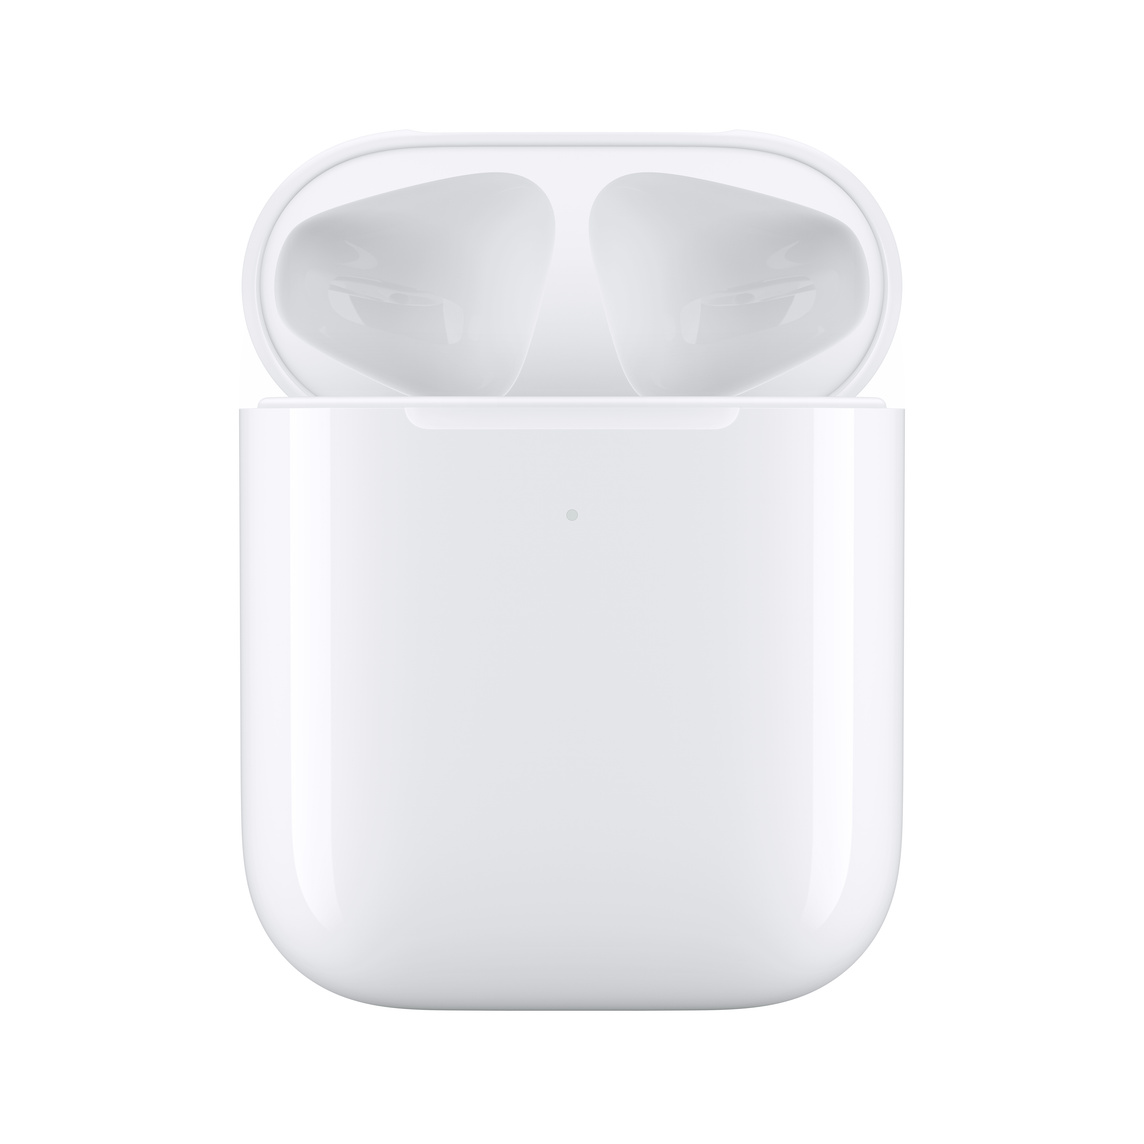 Apple Airpod Lade Etui | FINN.no